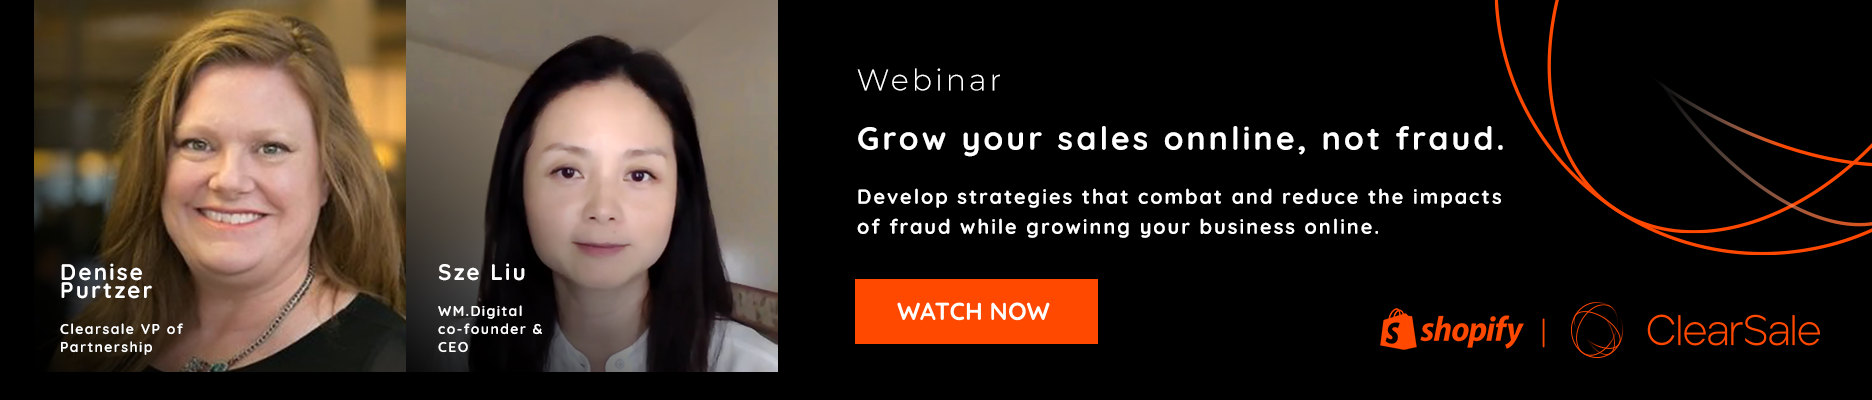 Webinar - Grwo your sales online, not fraud. ClarSale and Shopify